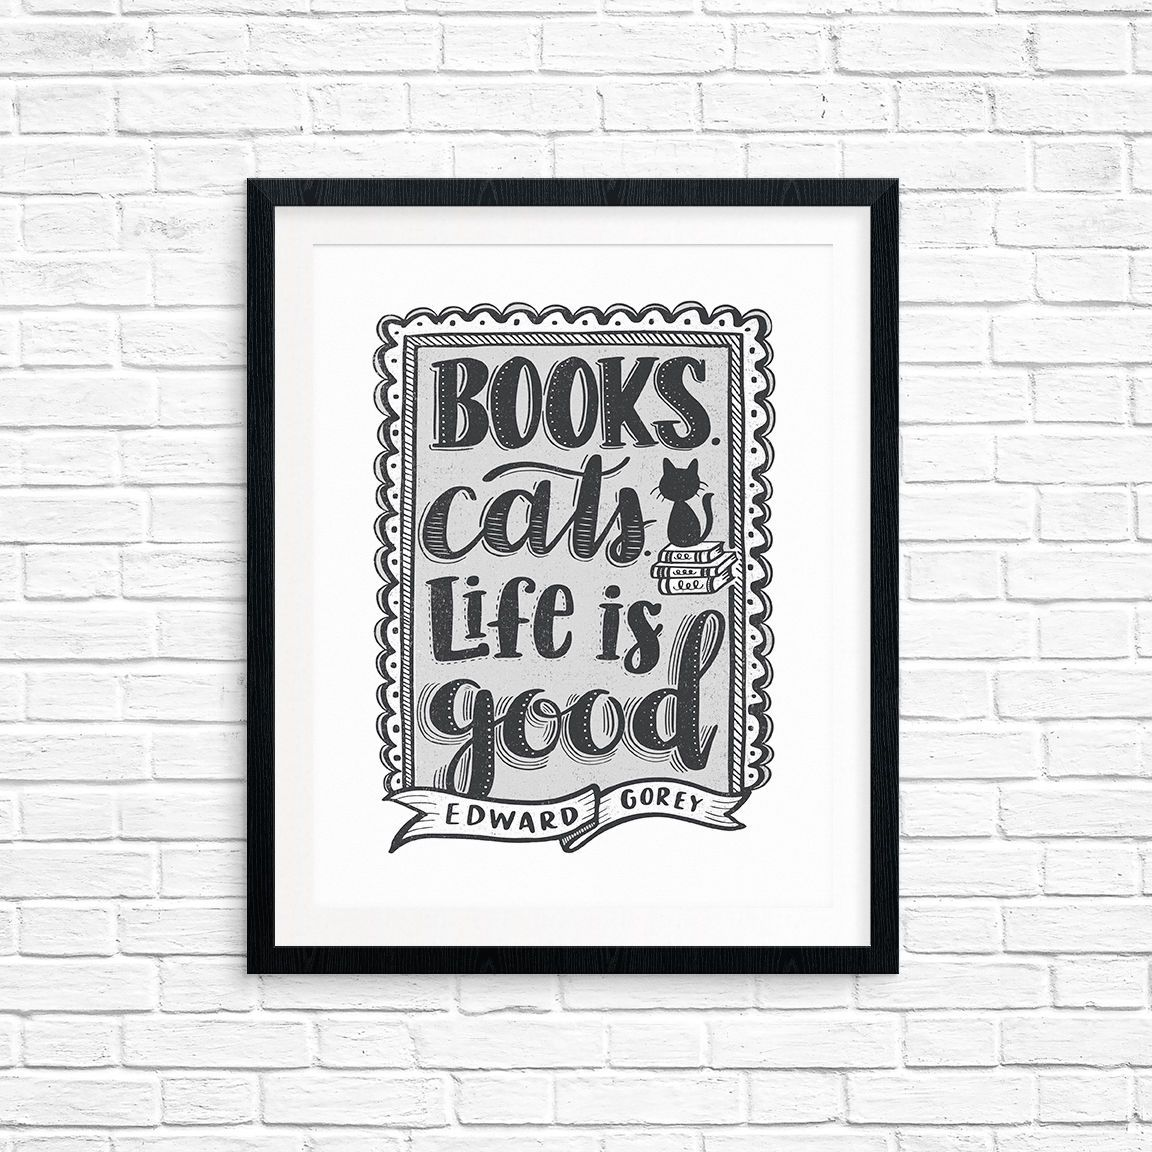 Printable art books cats life is good edward gorey book lover printable art books cats life is good edward gorey book lover quote art amipublicfo Gallery